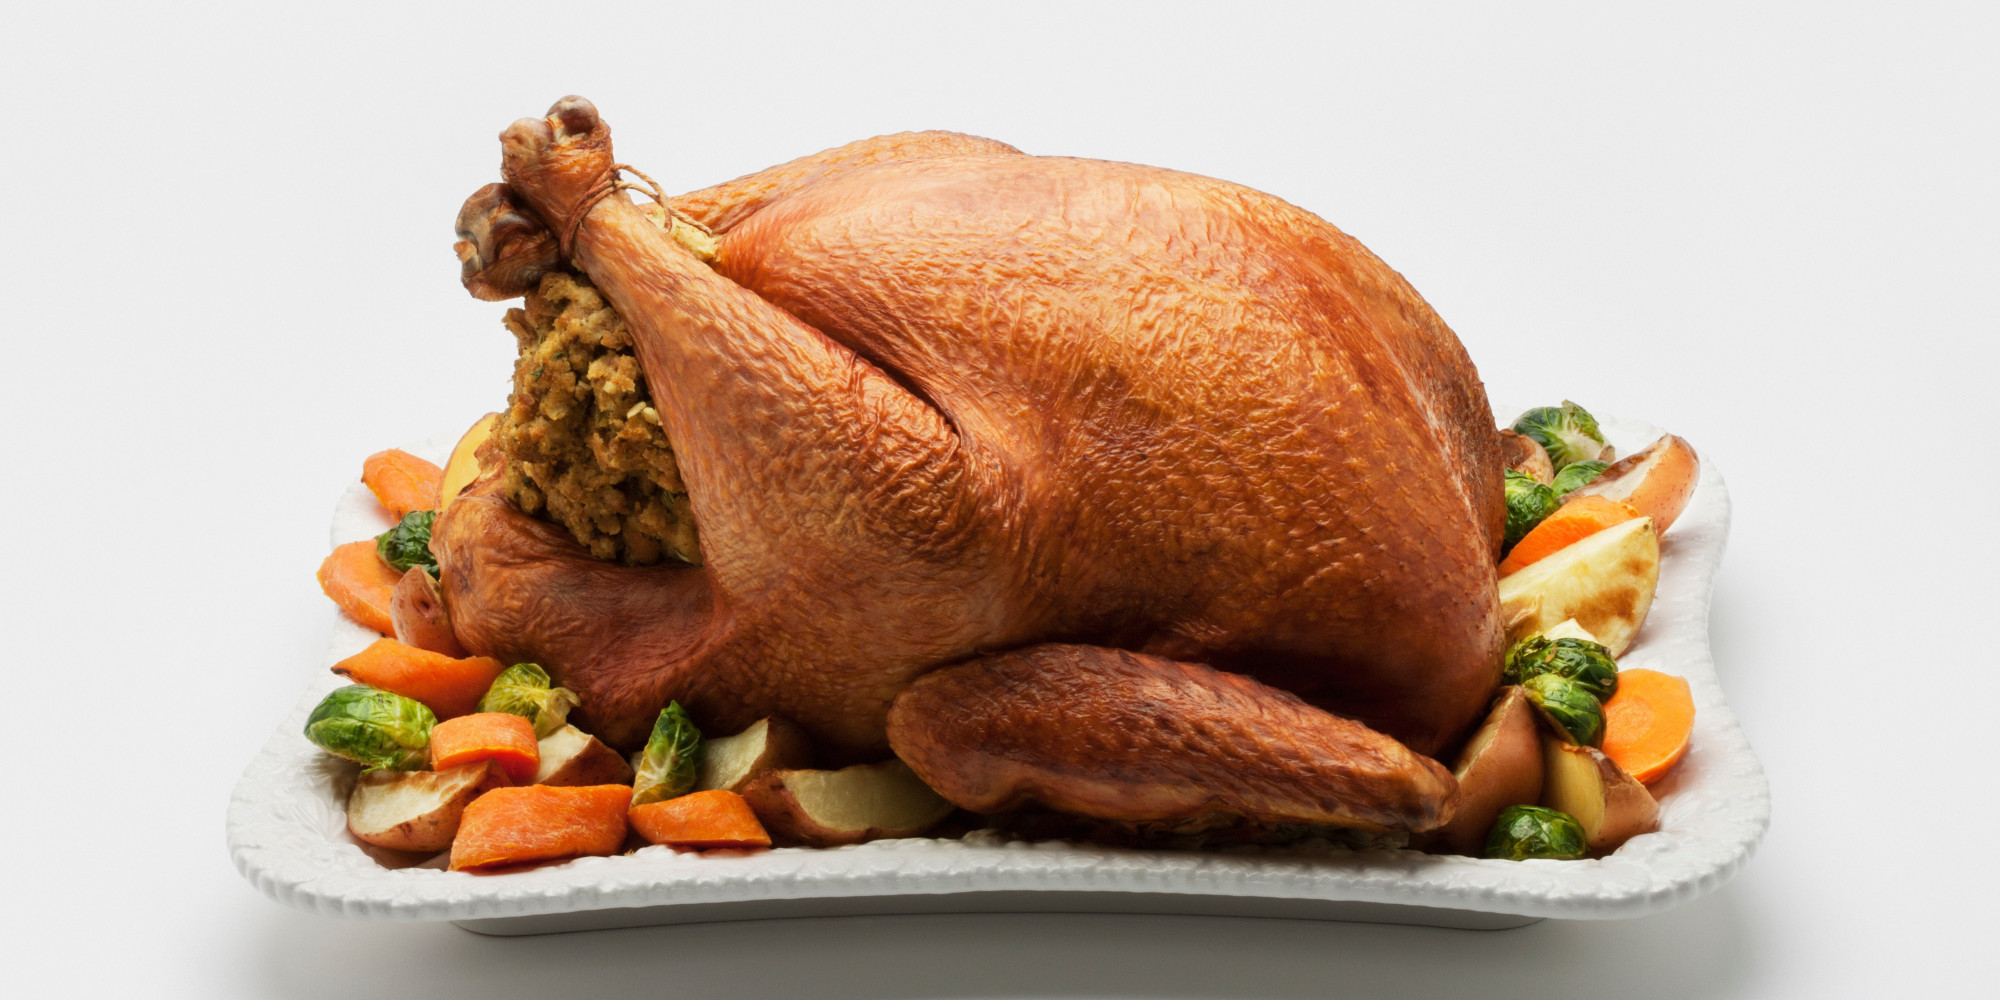 Thanksgiving Video Full Of Turkey  Tryptophan Making You Sleepy Is A Big Fat Lie